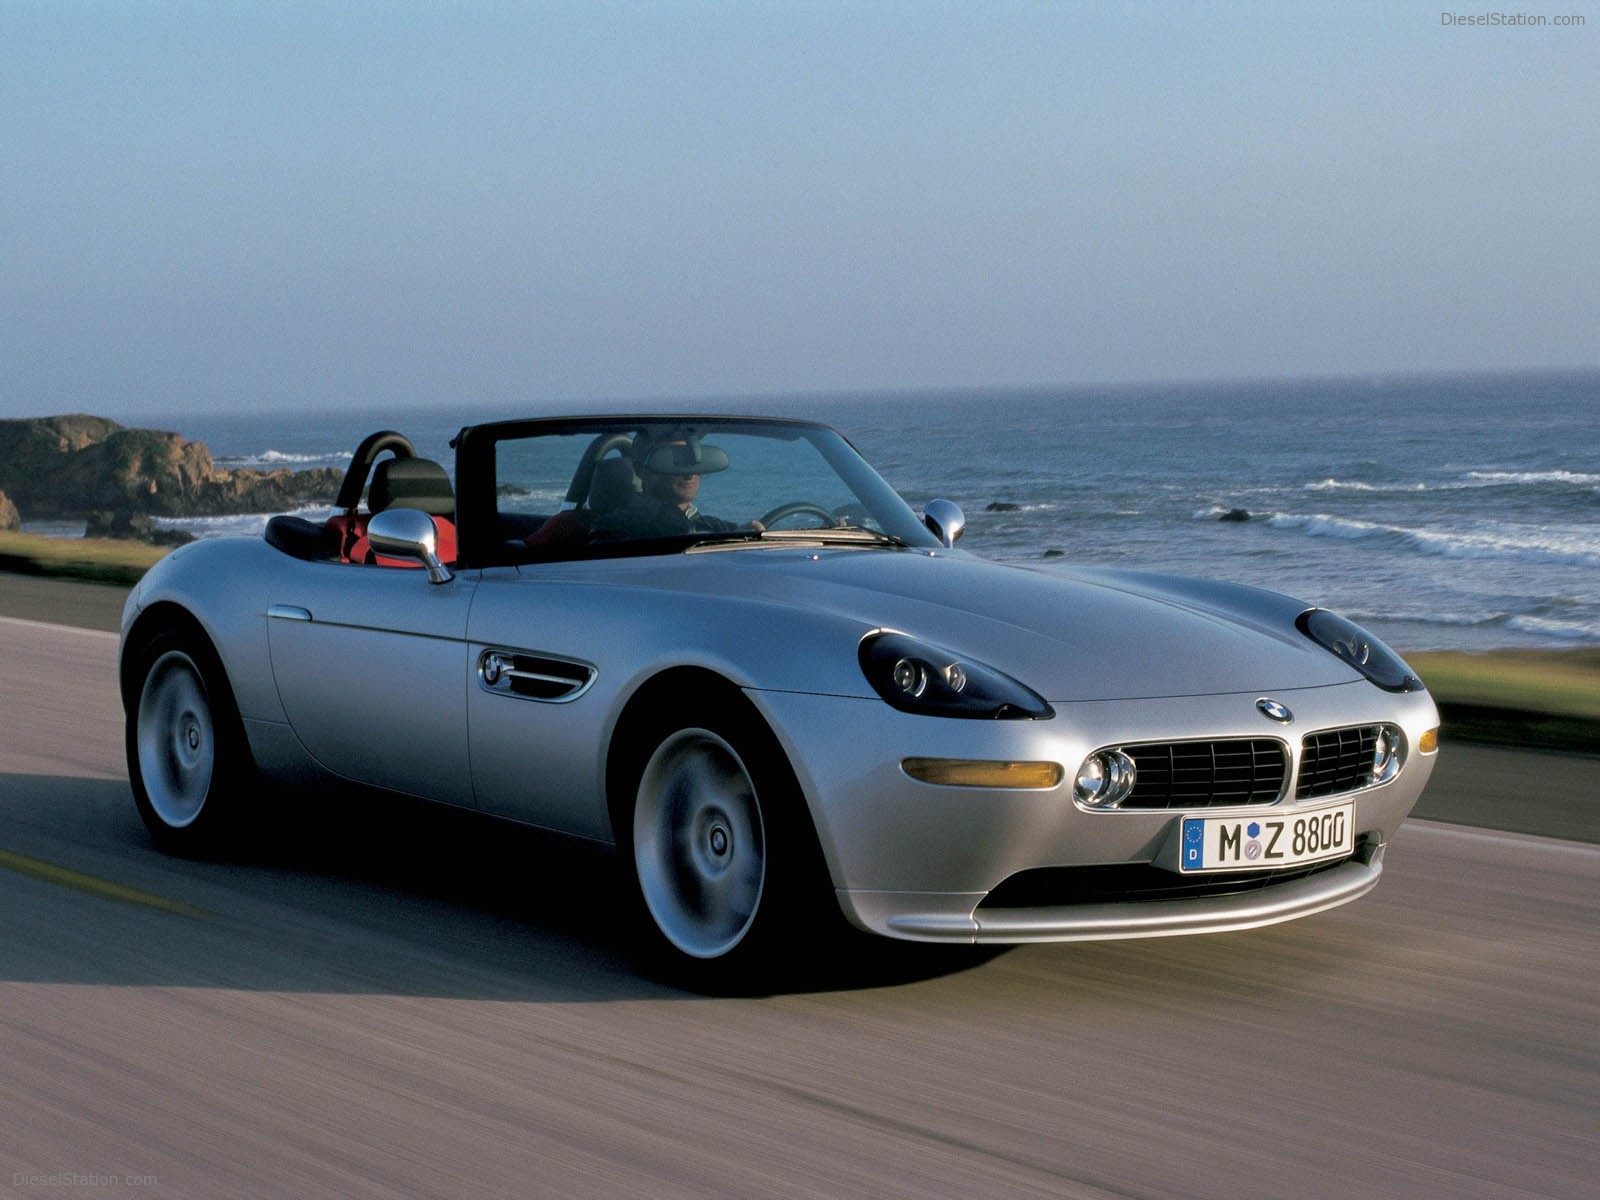 Bmw Z8 1999 Review Amazing Pictures And Images Look At